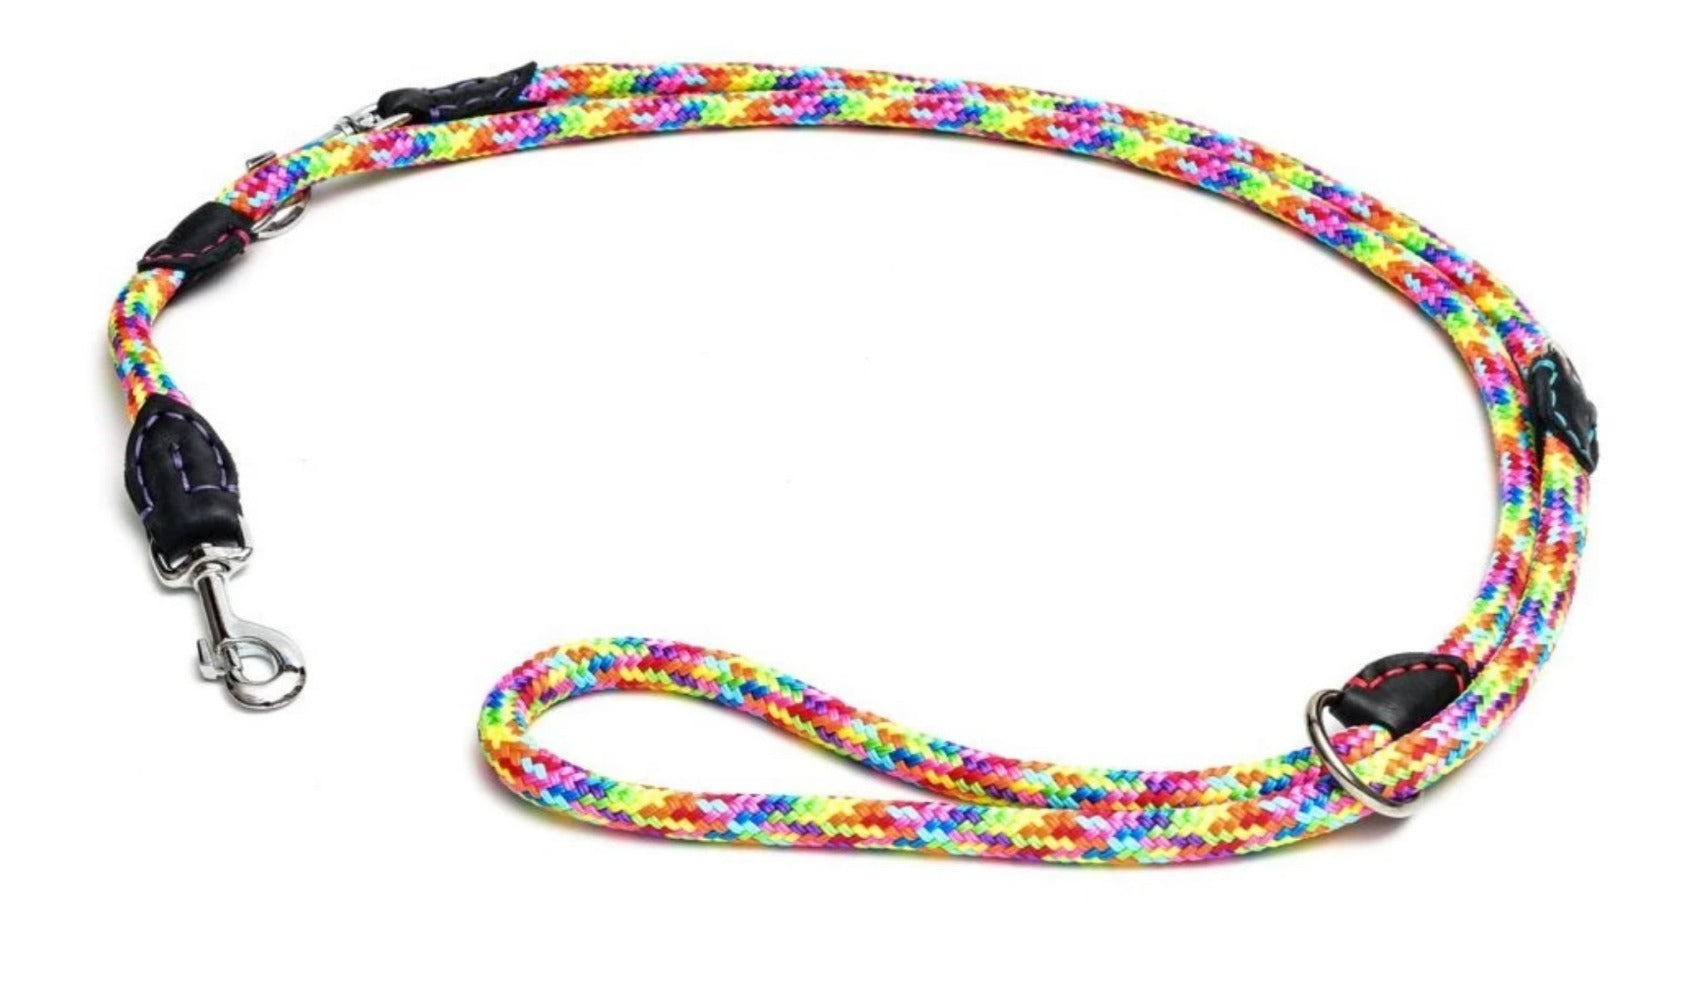 (NEW) 6 in one Rope/Leather Leash